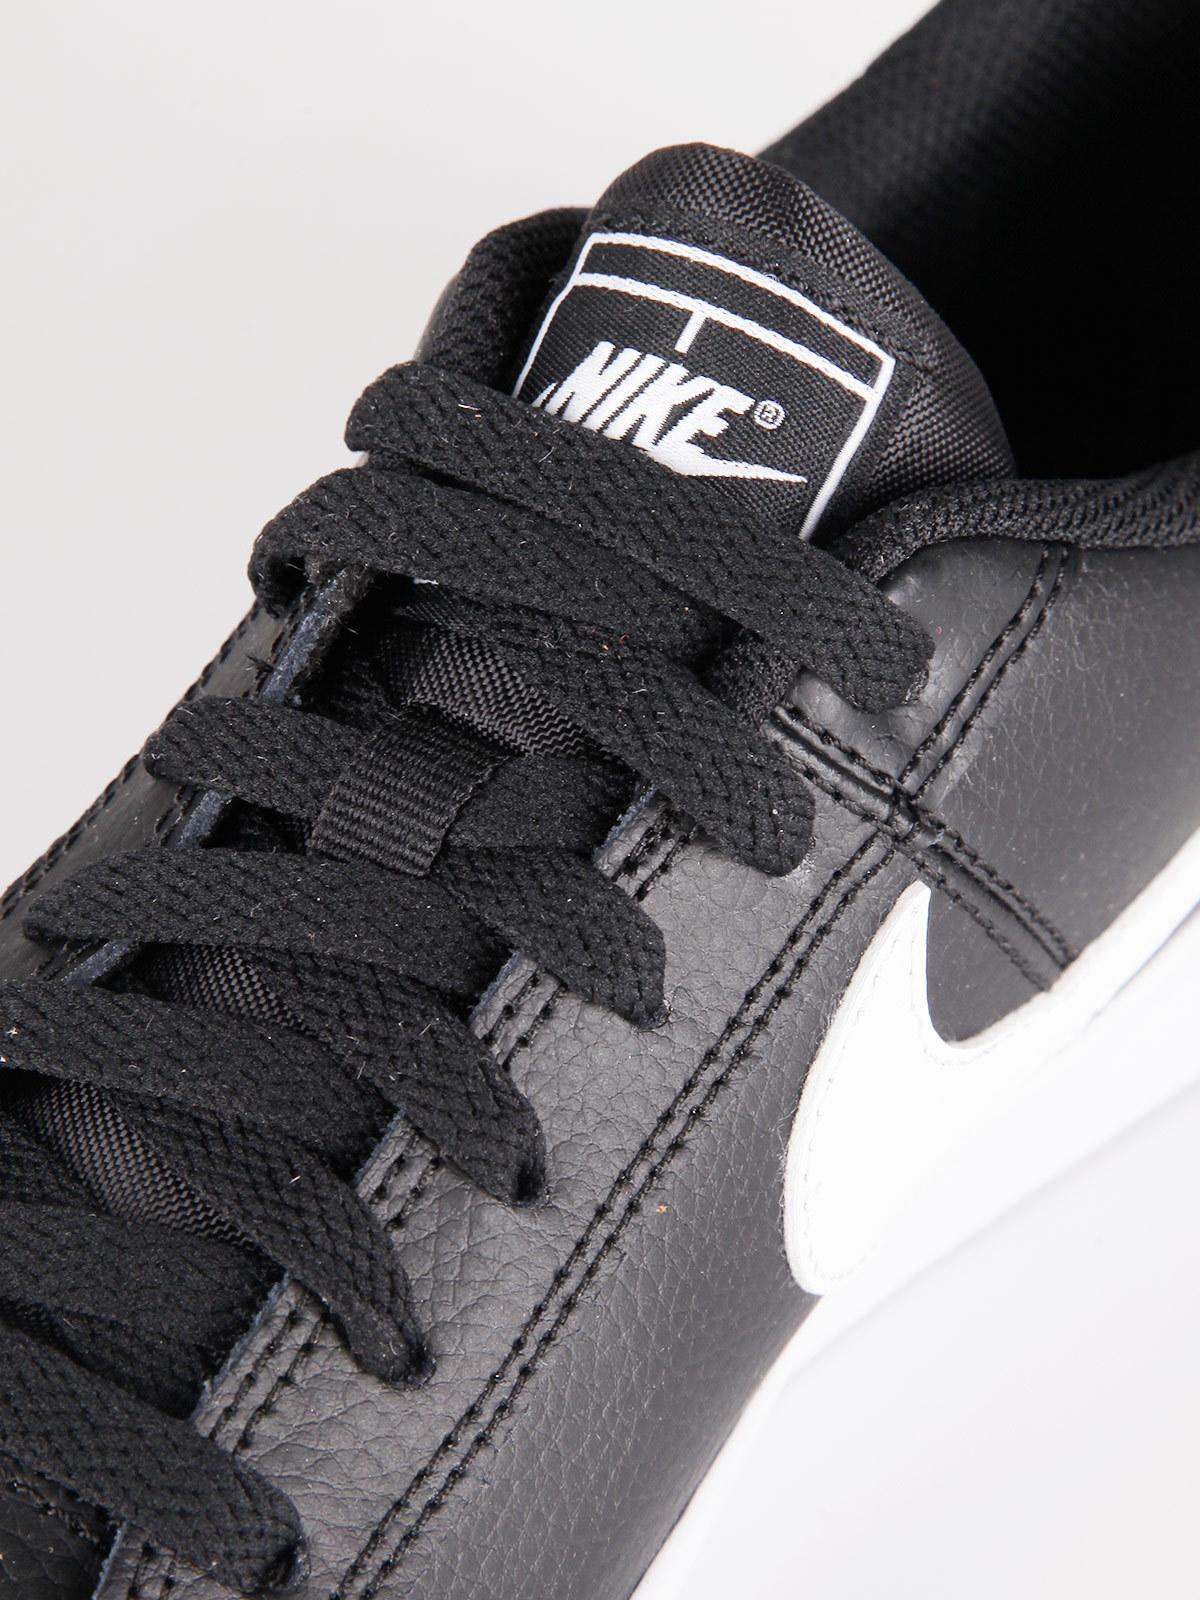 sneakers donna pelle nike nere